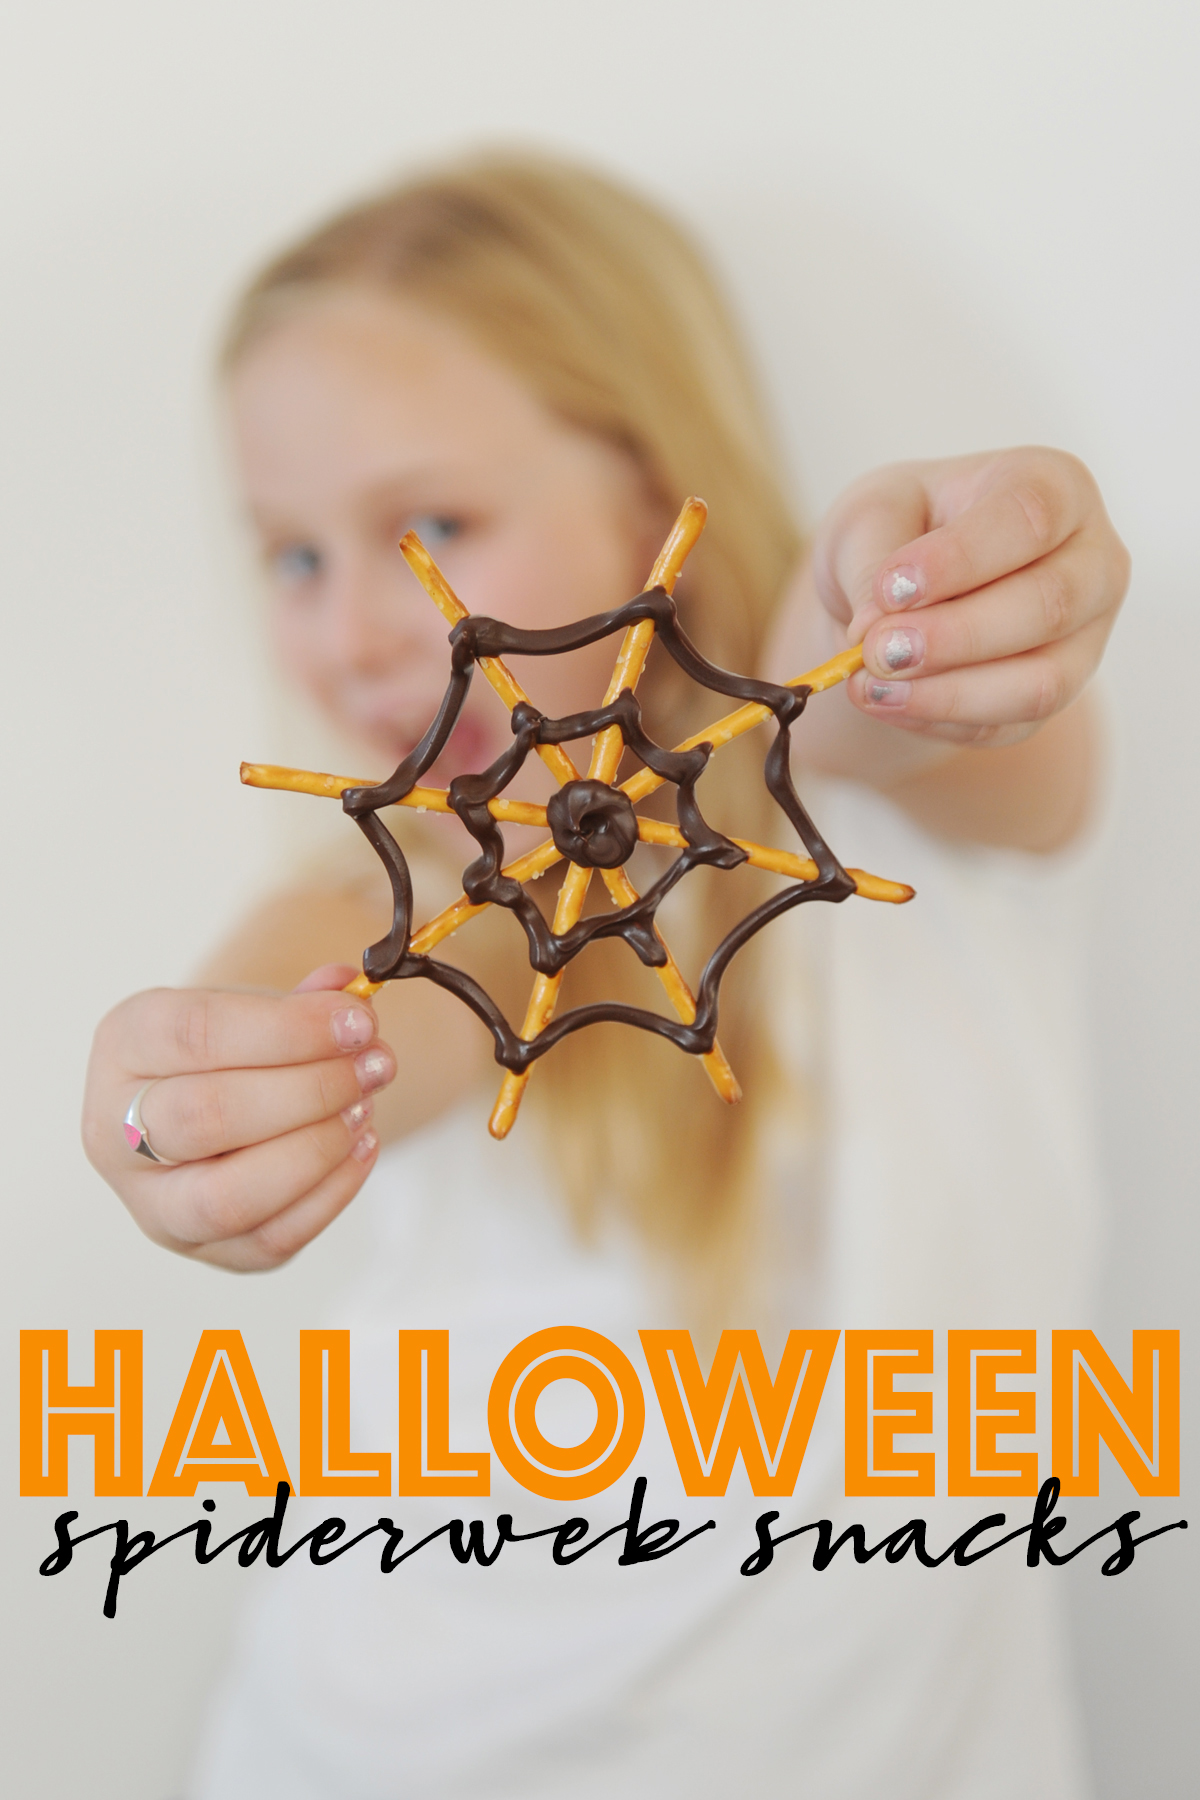 diy halloween spiderweb snacks